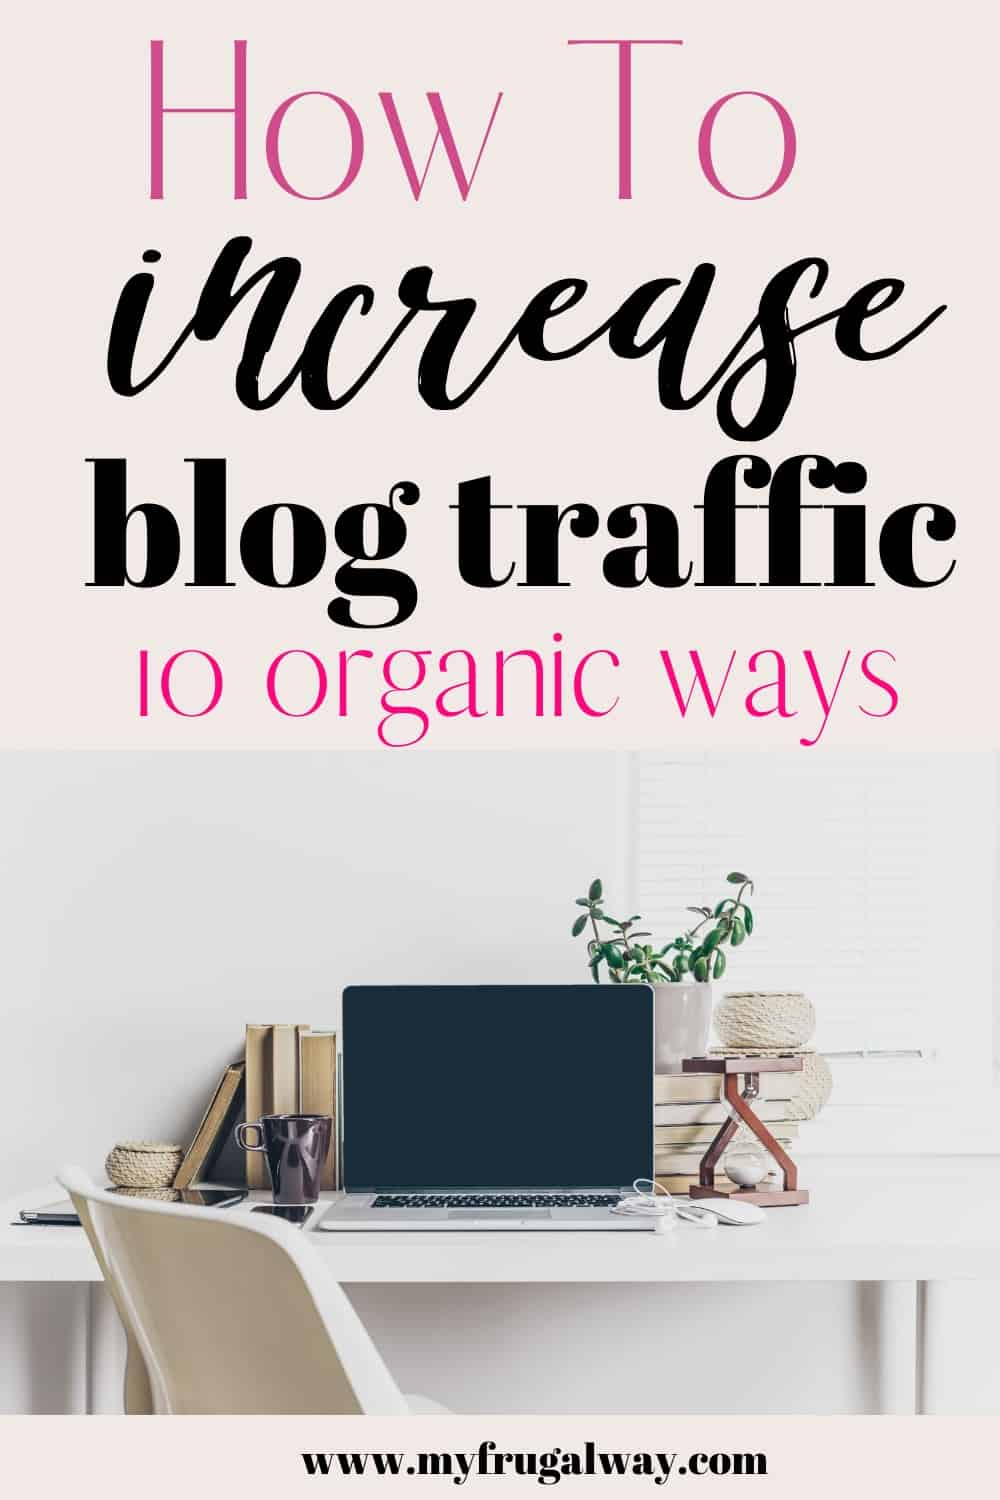 Ten blogging tips to grow and increase blog traffic. #bloggingtips #wordpress #blogging #blogging101